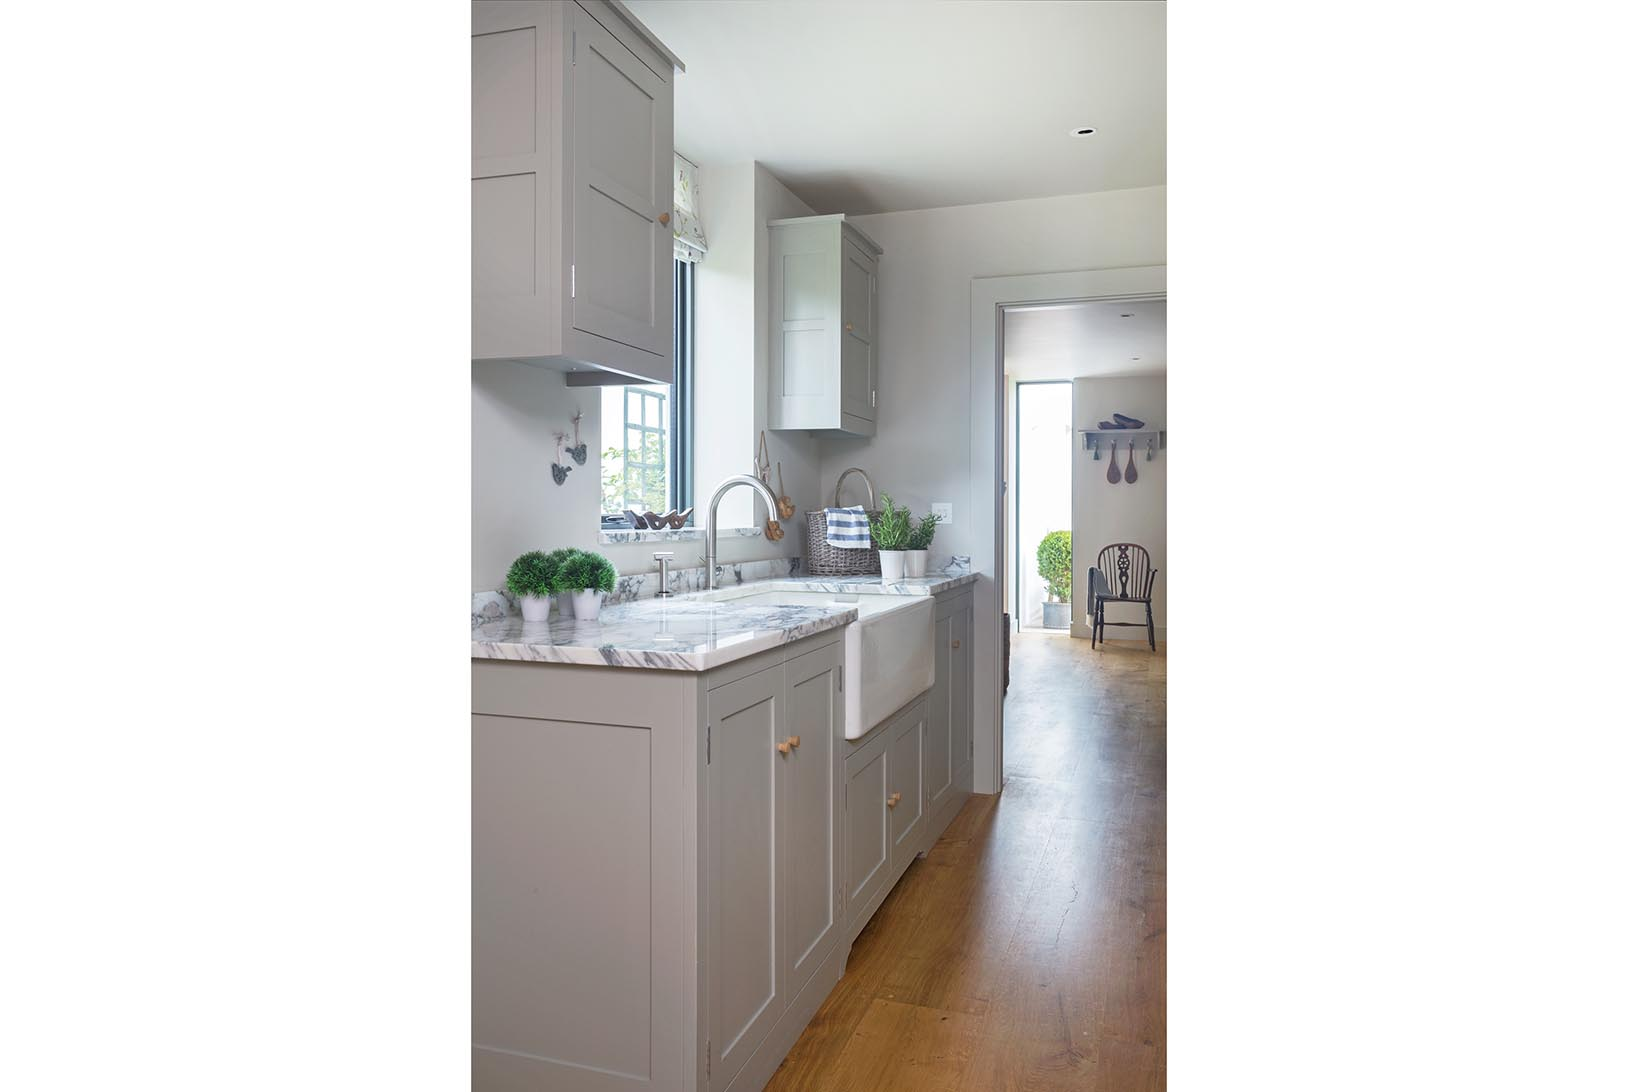 Plain shaker utility room in Farrow and Ball Harwick with polished Arrabascatta marble worktops and a reclaimed butler sink.